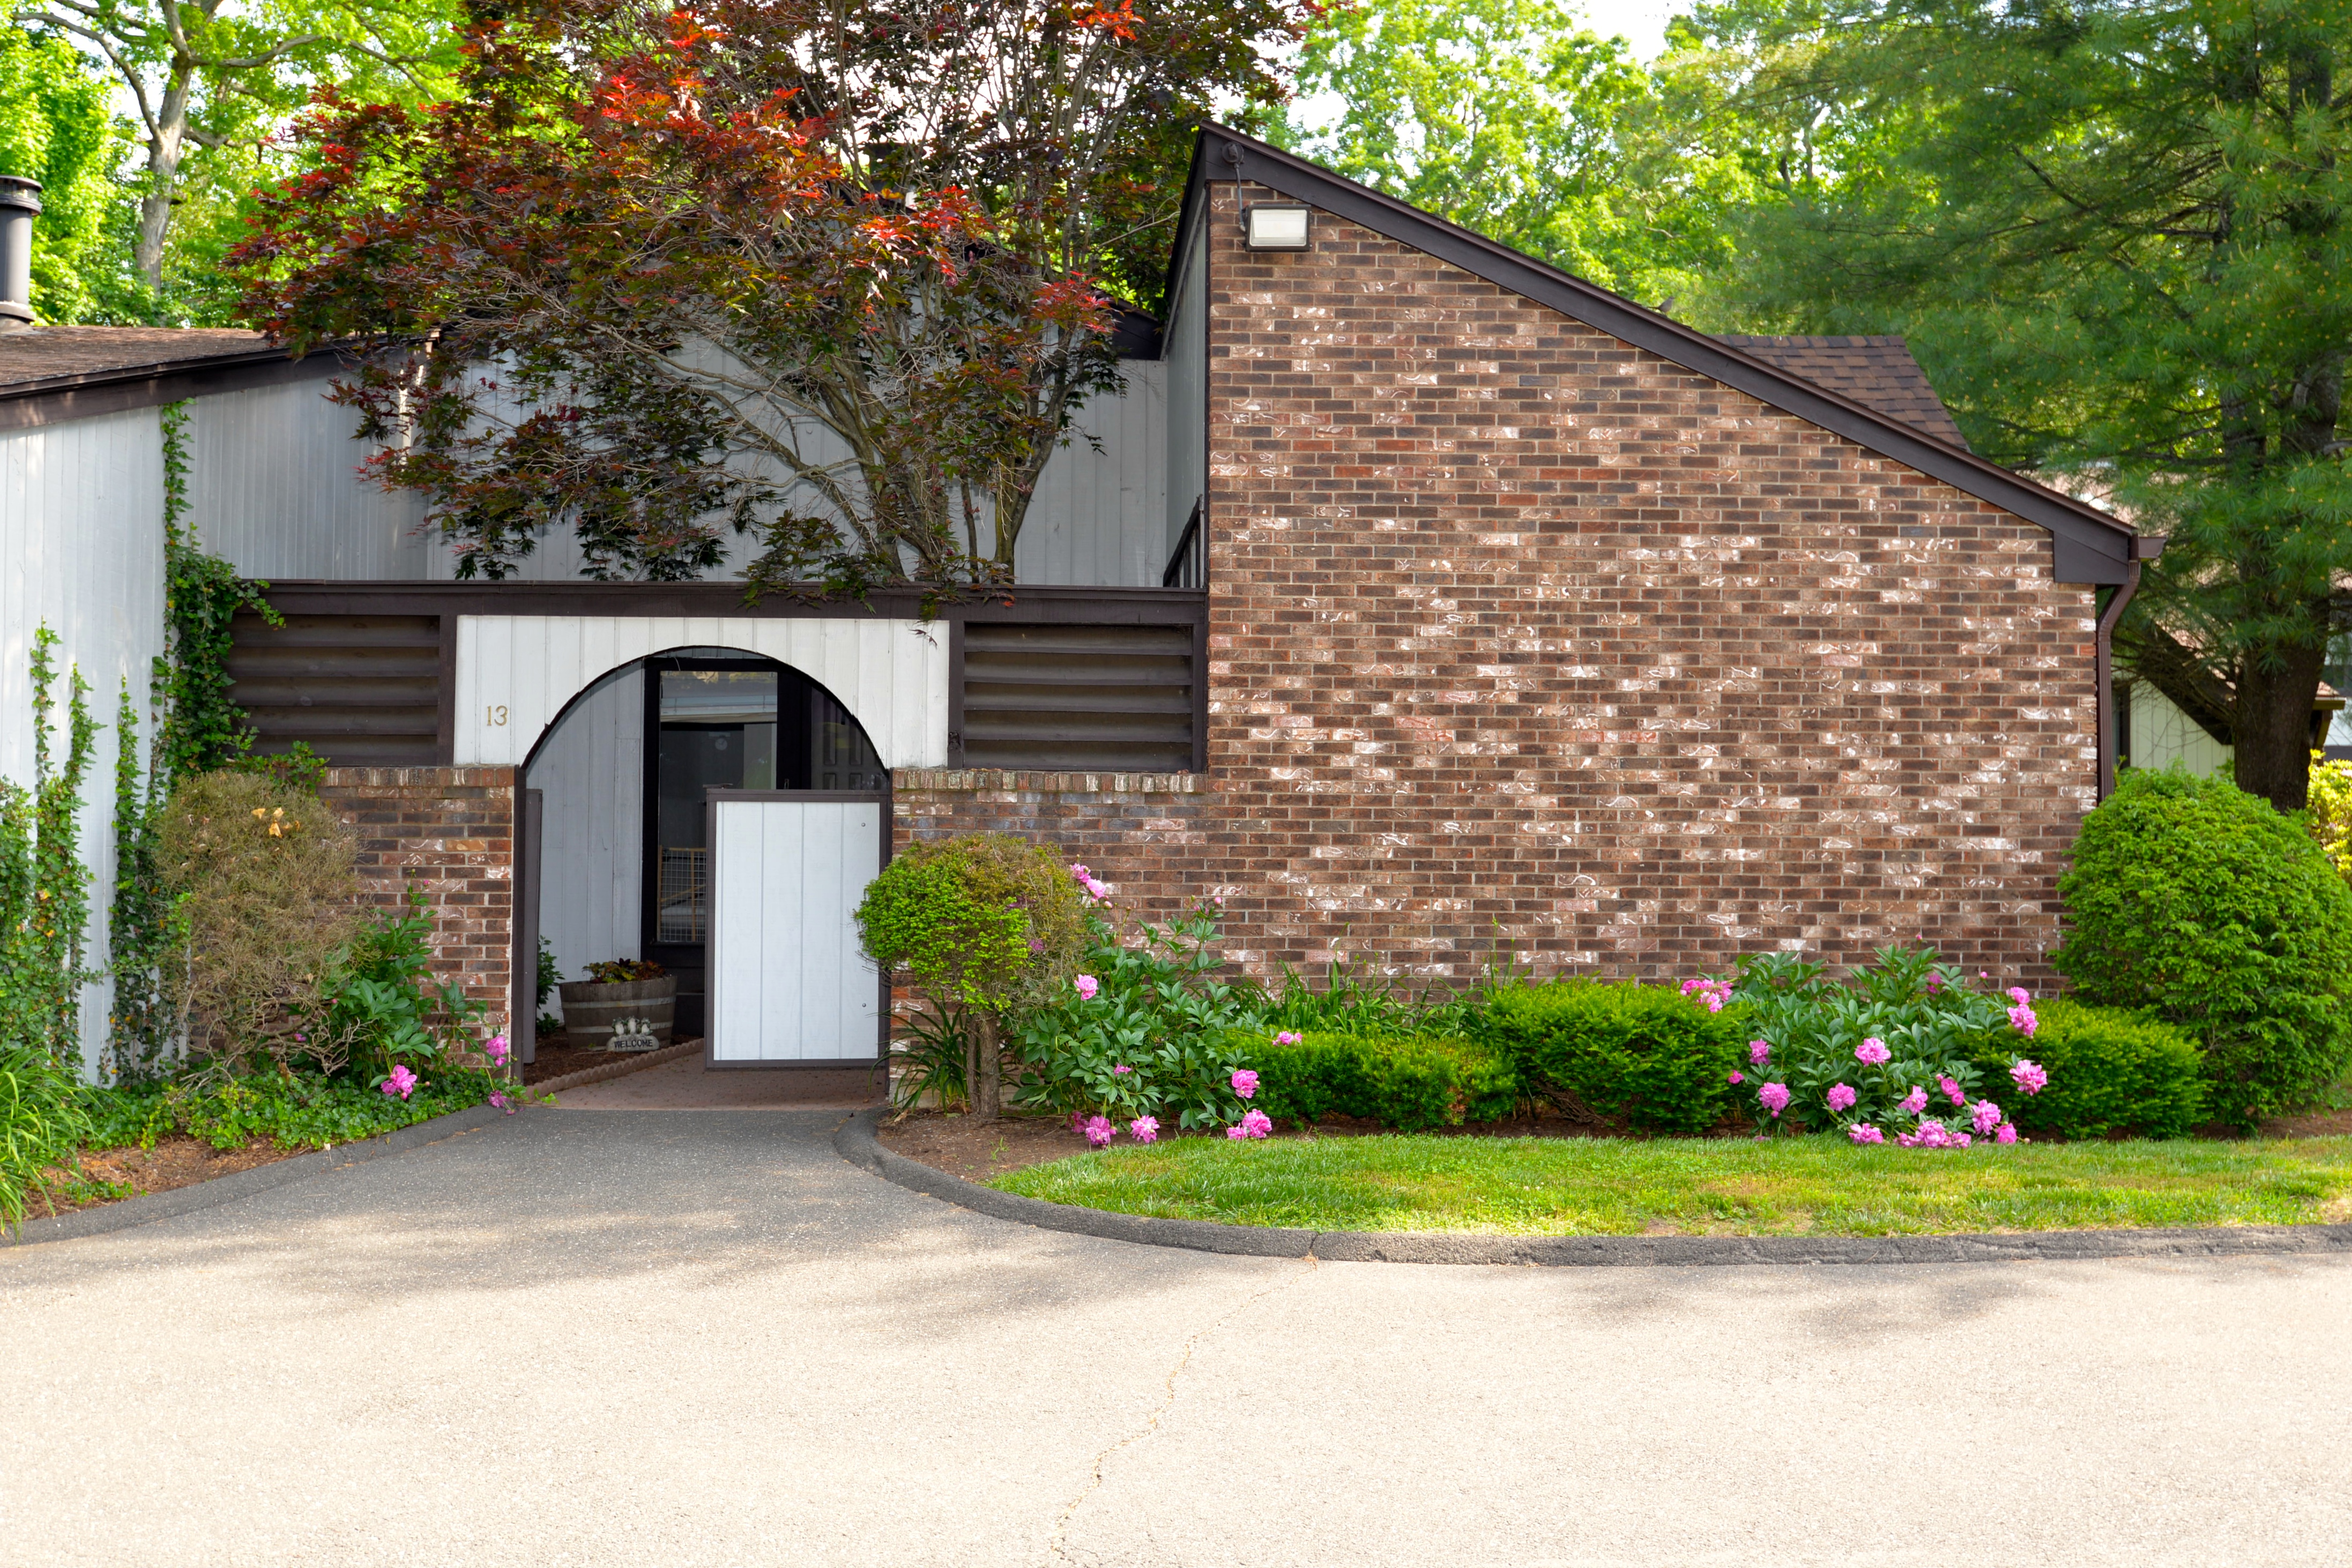 Condominium for Sale at Lake Living 13 Hearthstone Drive 13 Brookfield, Connecticut, 06804 United States